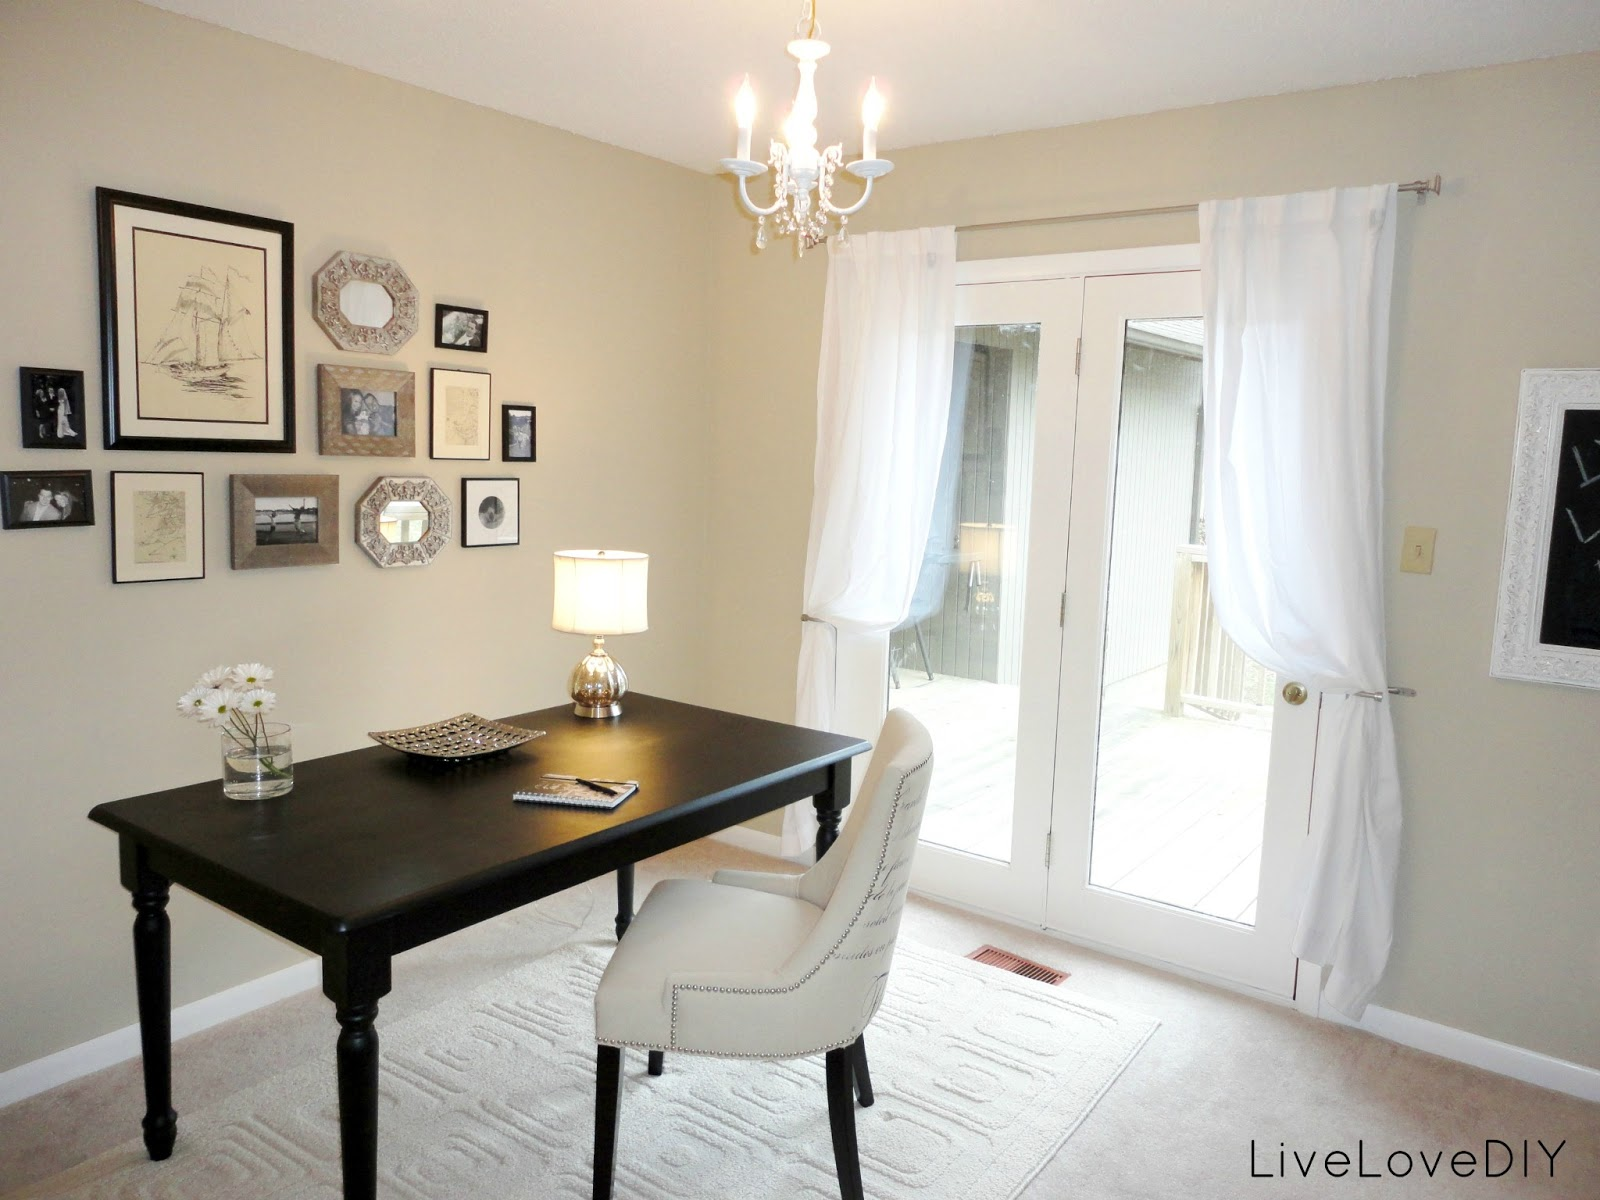 LiveLoveDIY: The $300 Office Makeover!